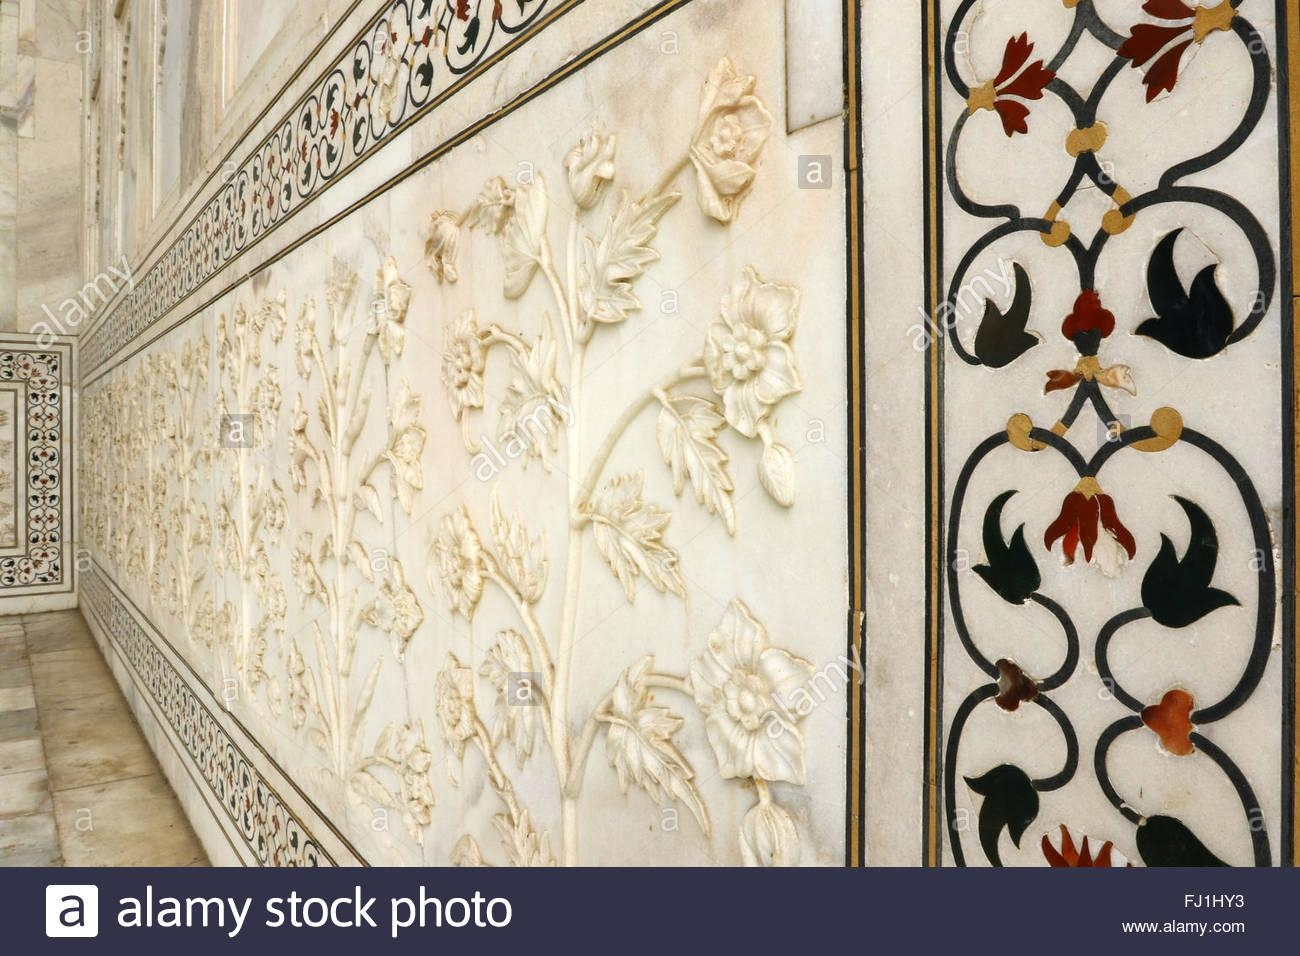 Taj Mahal Marble Art Flowers Stock Photos & Taj Mahal Marble Art Inside Taj Mahal Wall Art (Image 17 of 20)